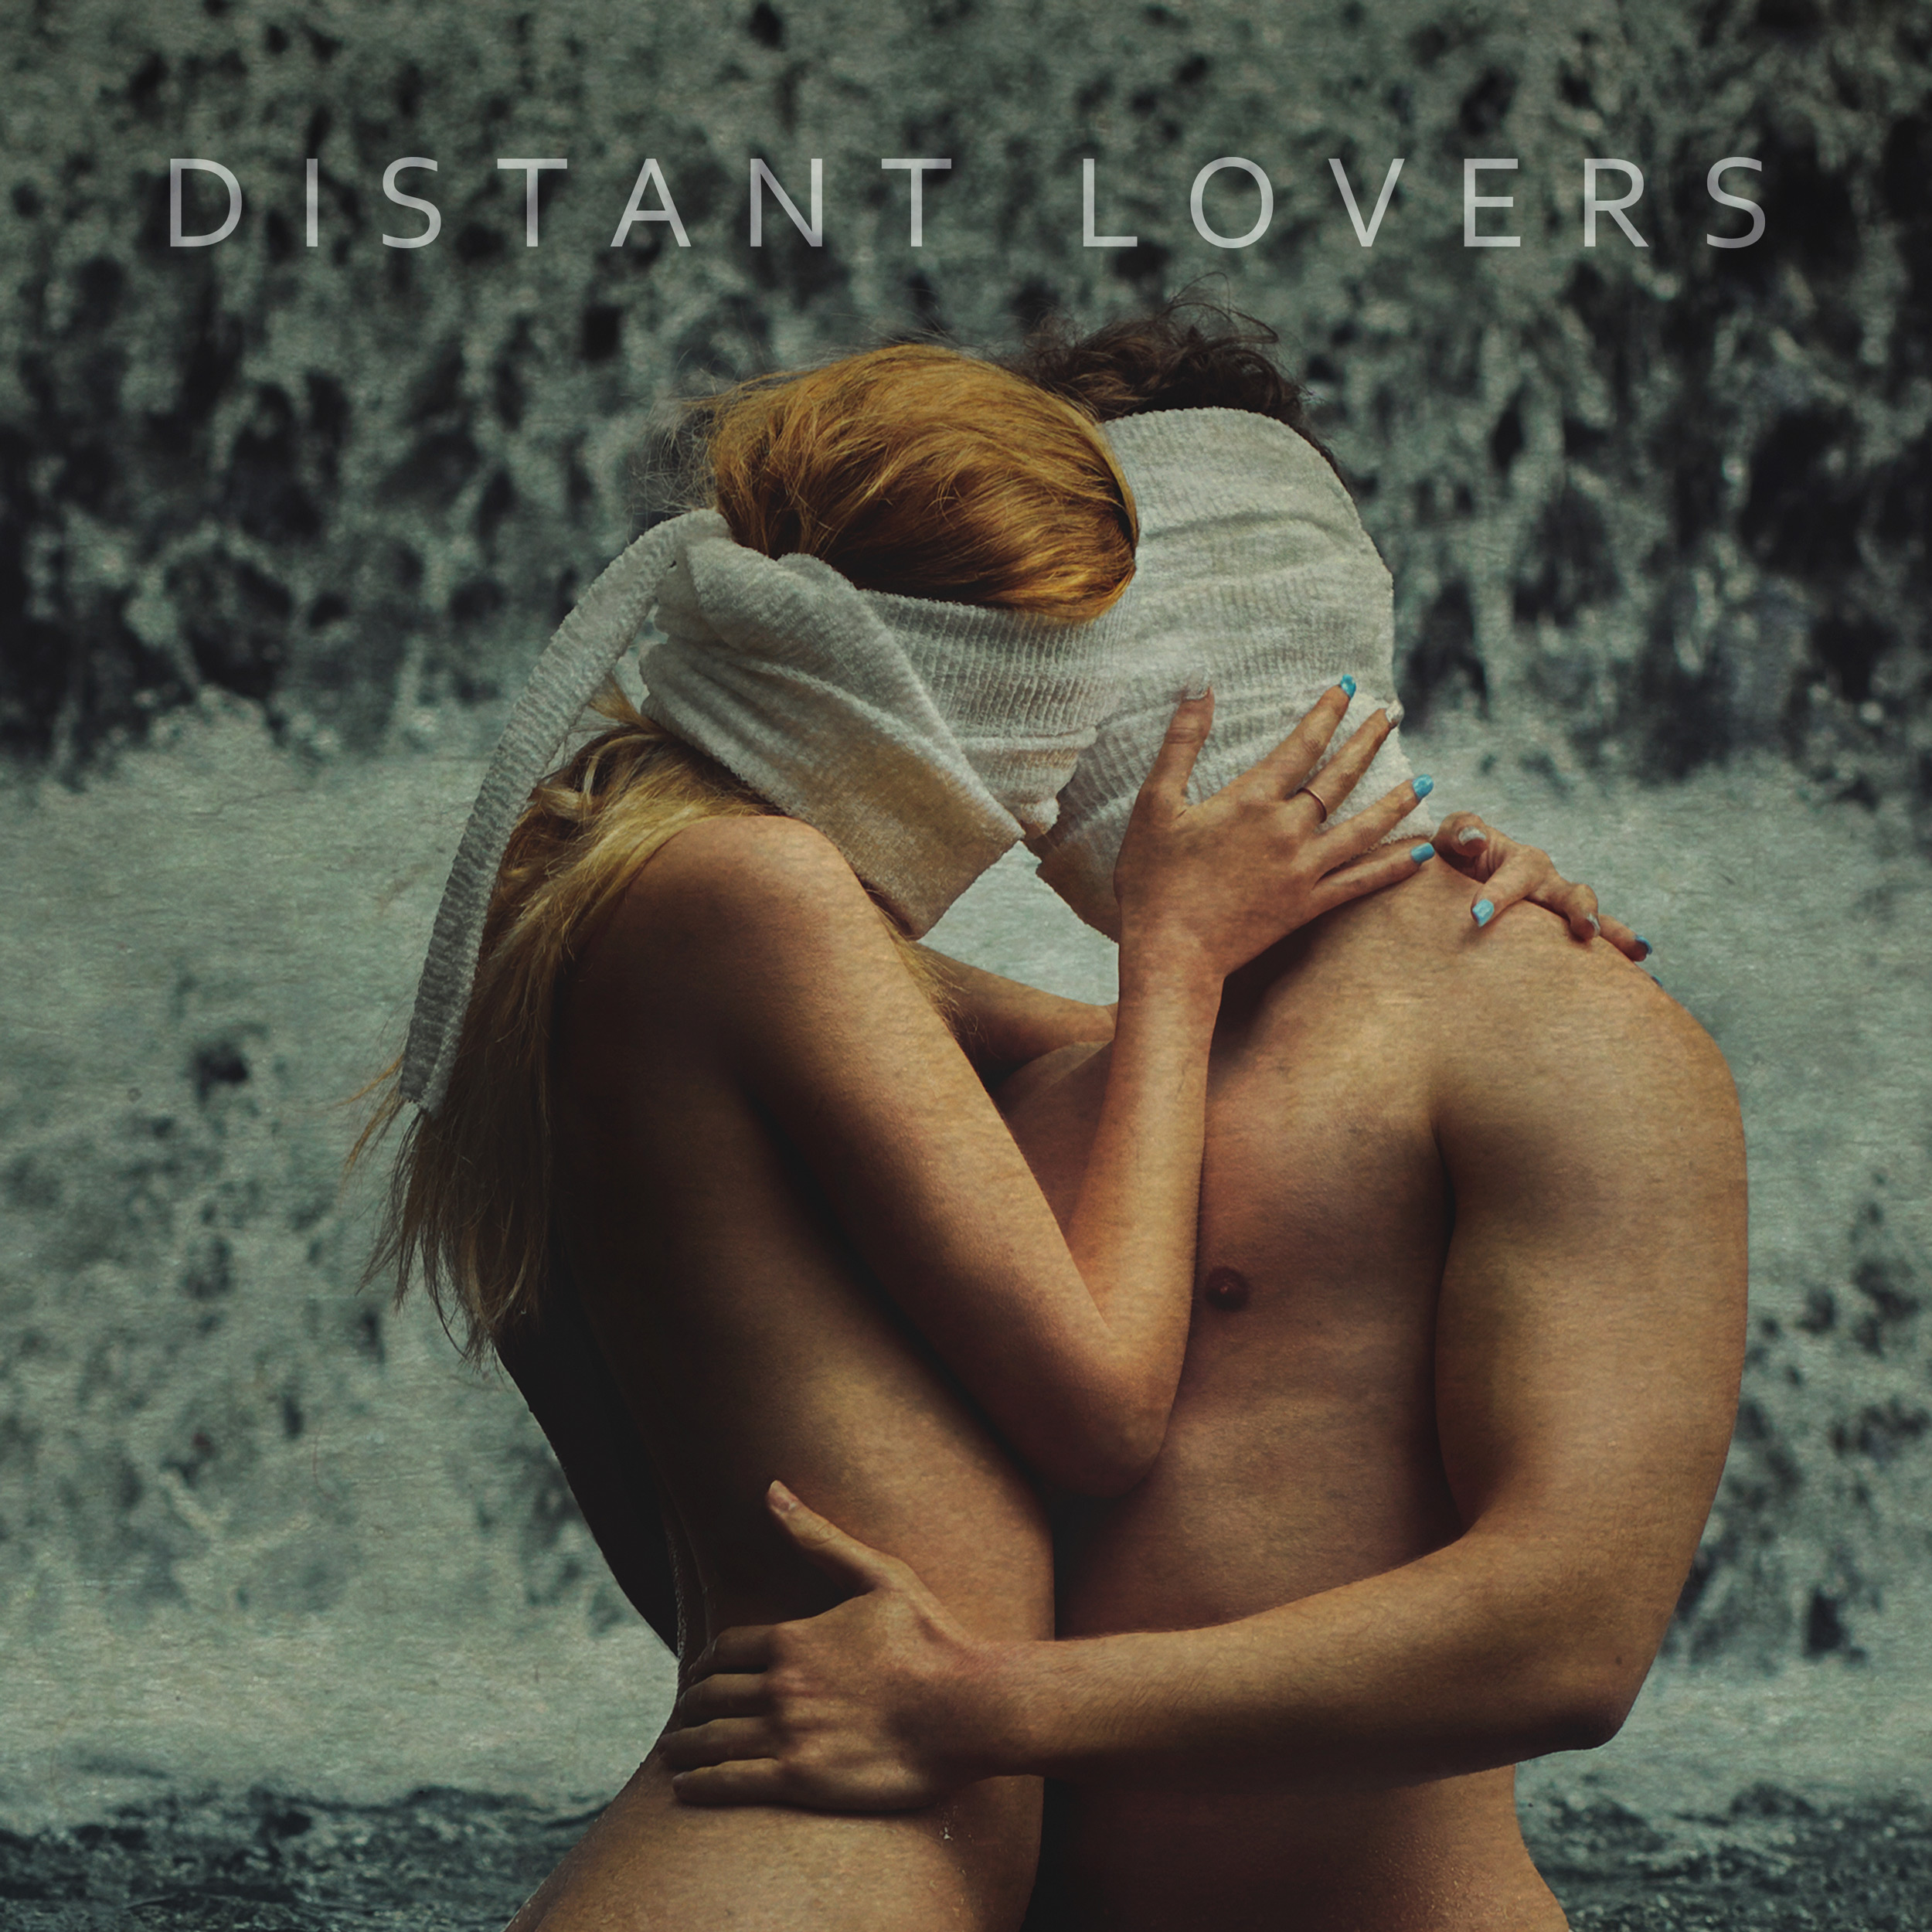 DISTAN-LOVERS